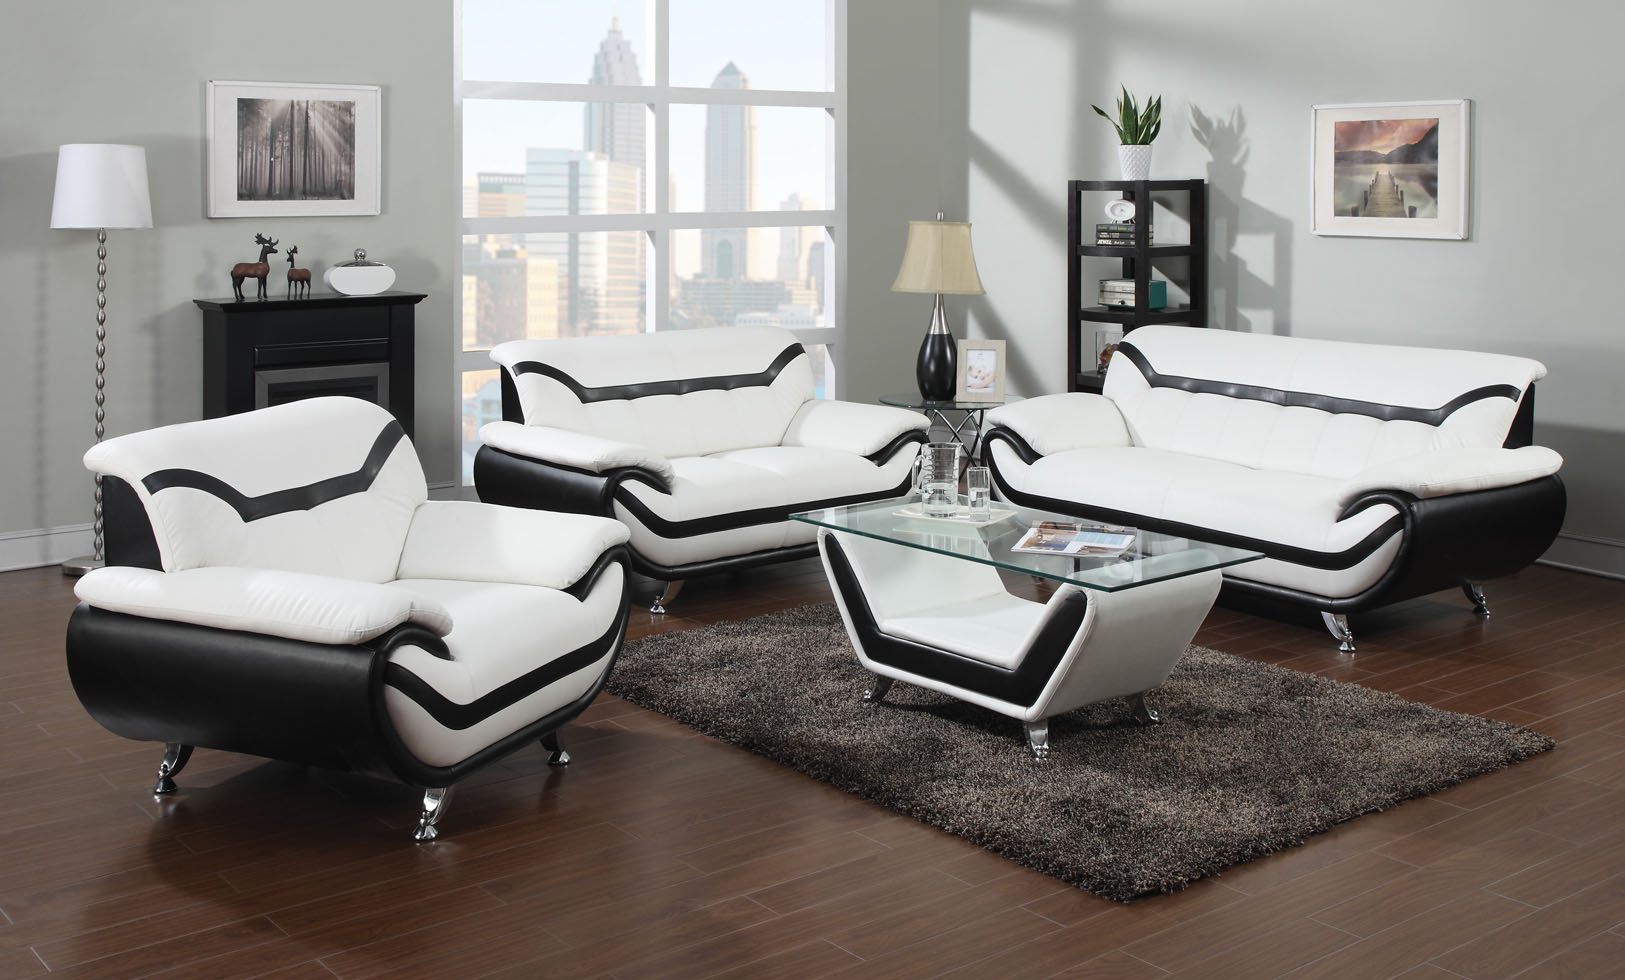 Leather Living Room Furnitures 2 Piece Modern White Leather Sofas With Black Trim